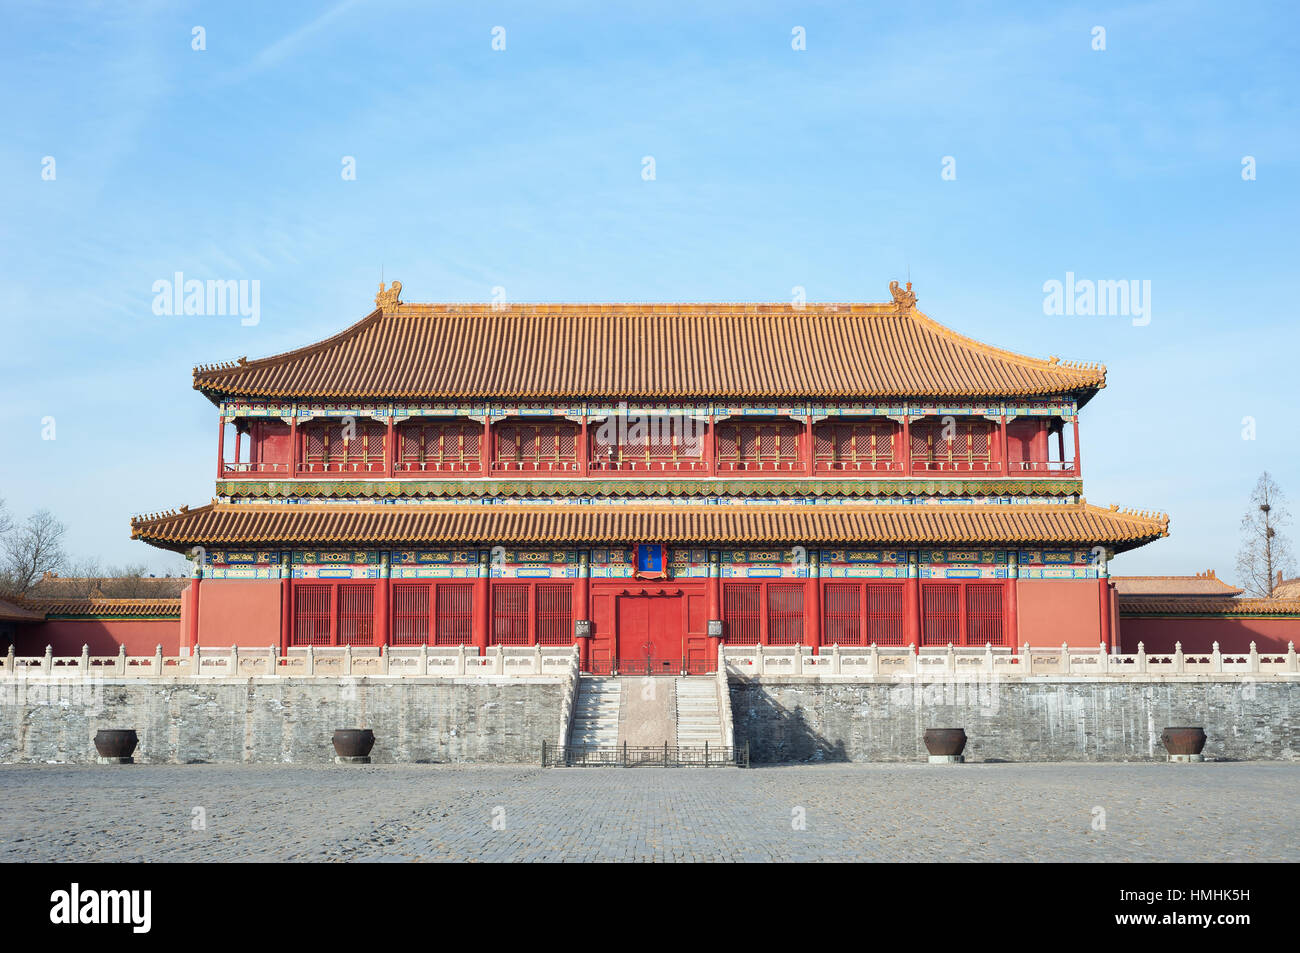 Large water cauldrons outside the Tower of Enhanced Righteousness in the main courtyard of the Forbidden City, Beijing - Stock Image